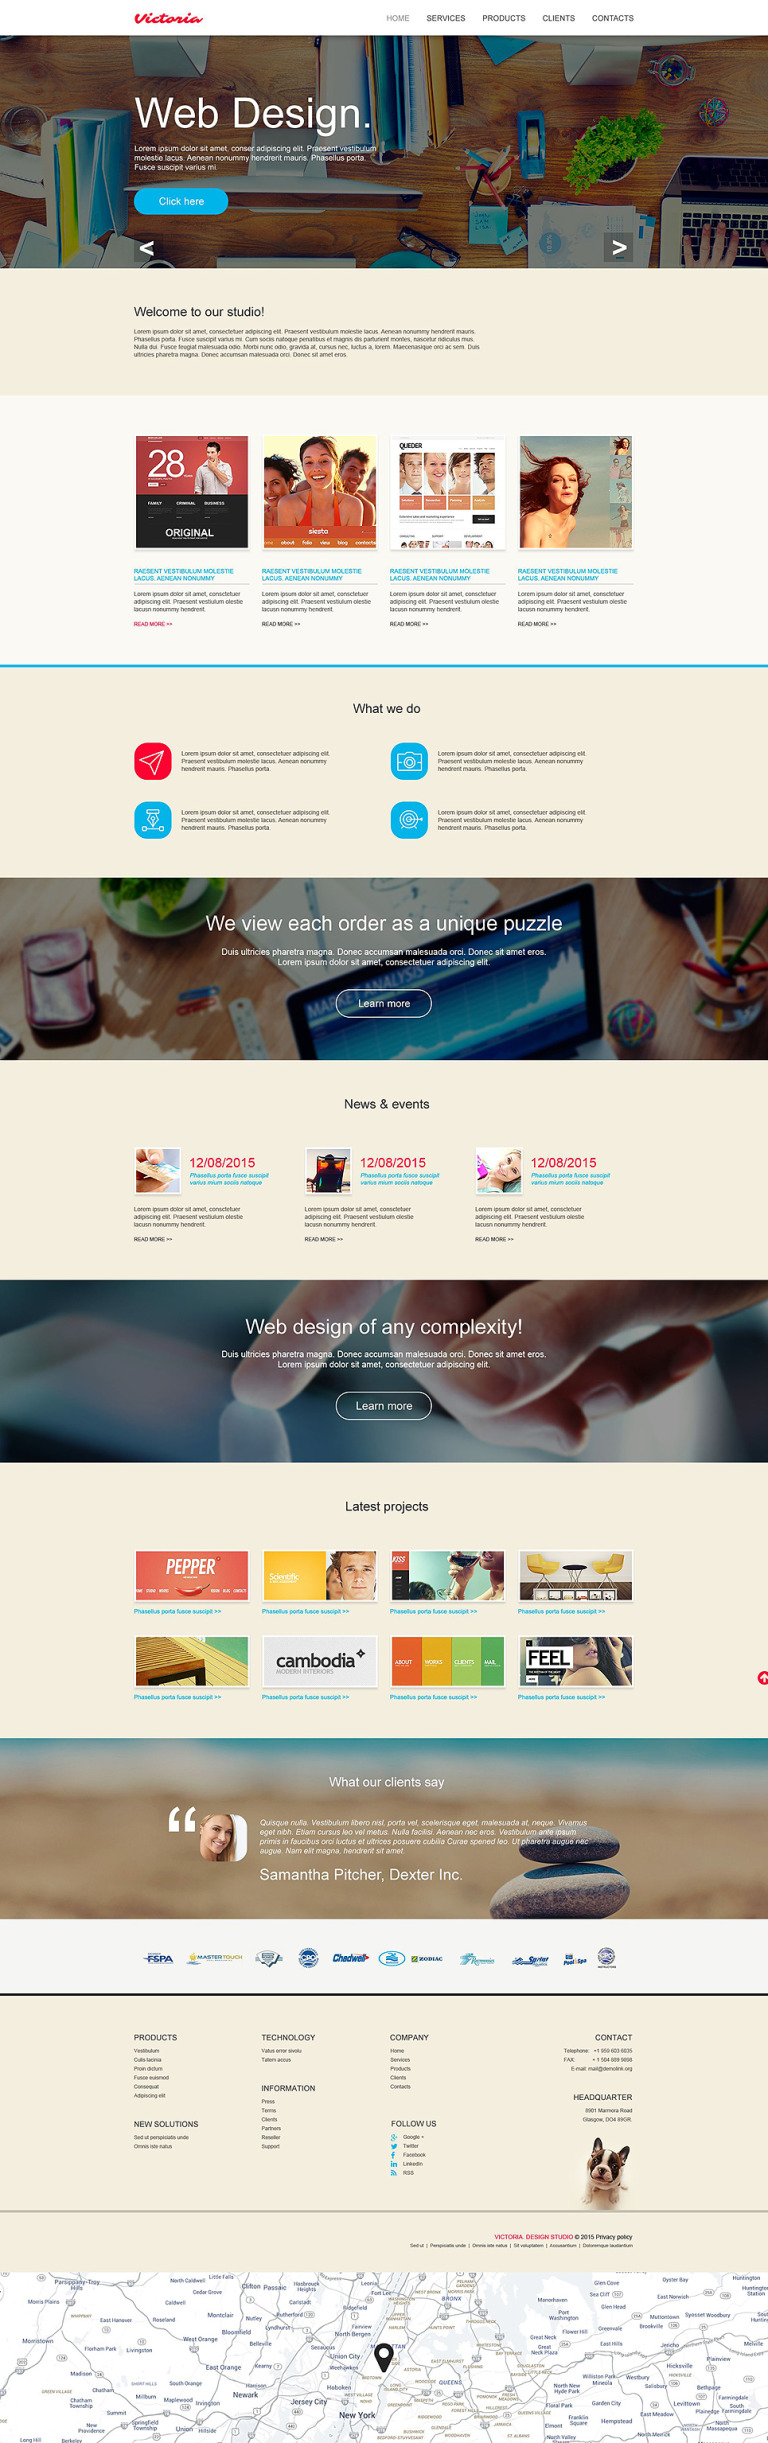 Web Design Muse Template New Screenshots BIG